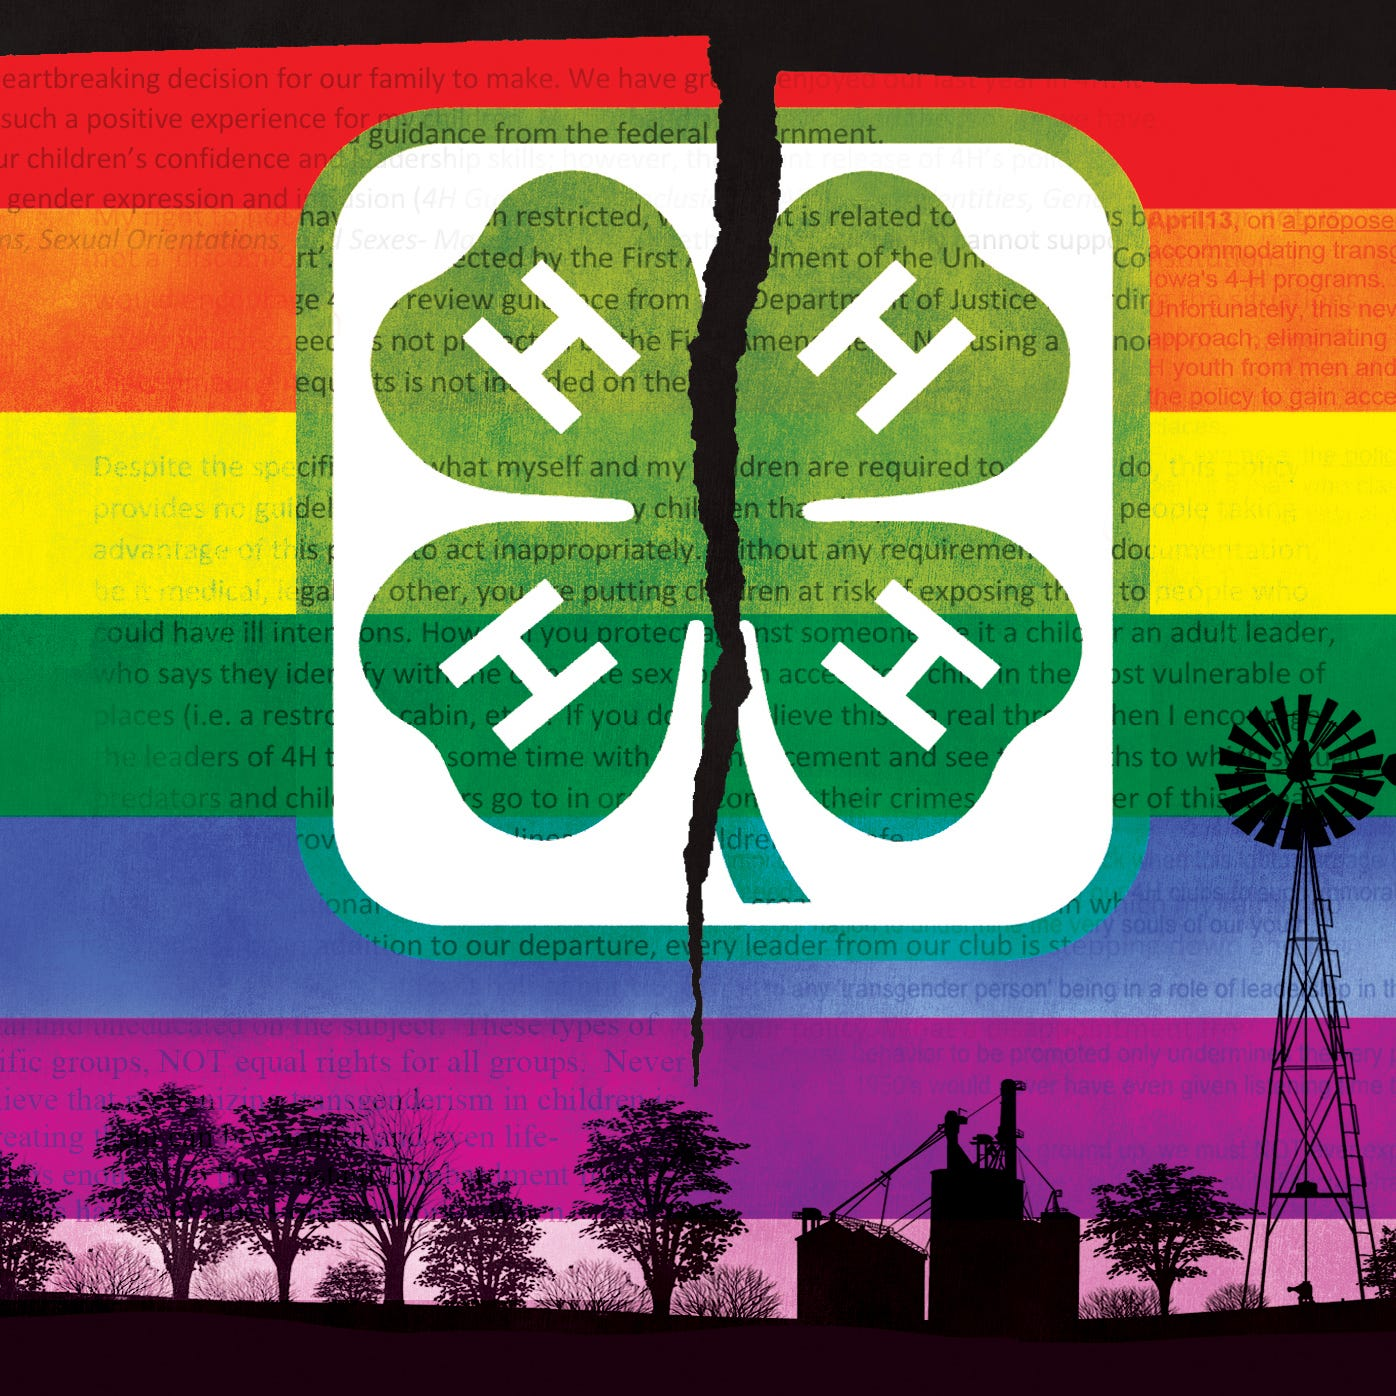 Chuck Grassley: USDA should not have pressured 4-H to rescind LGBT policy